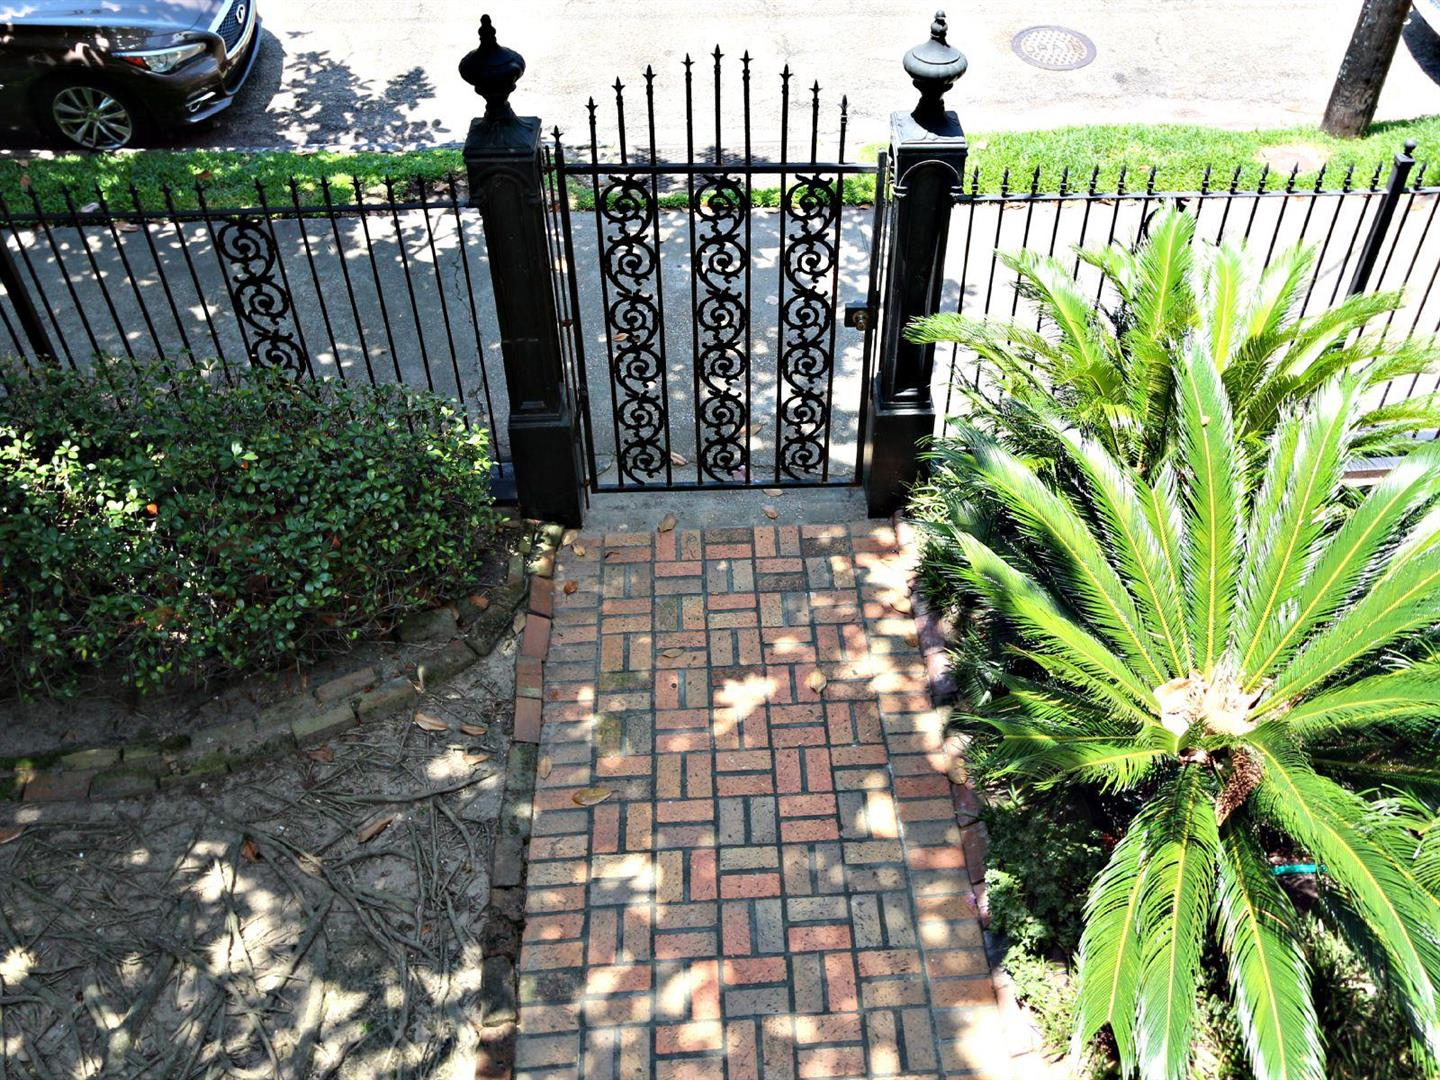 1129JacksonAve.Gate.jpg